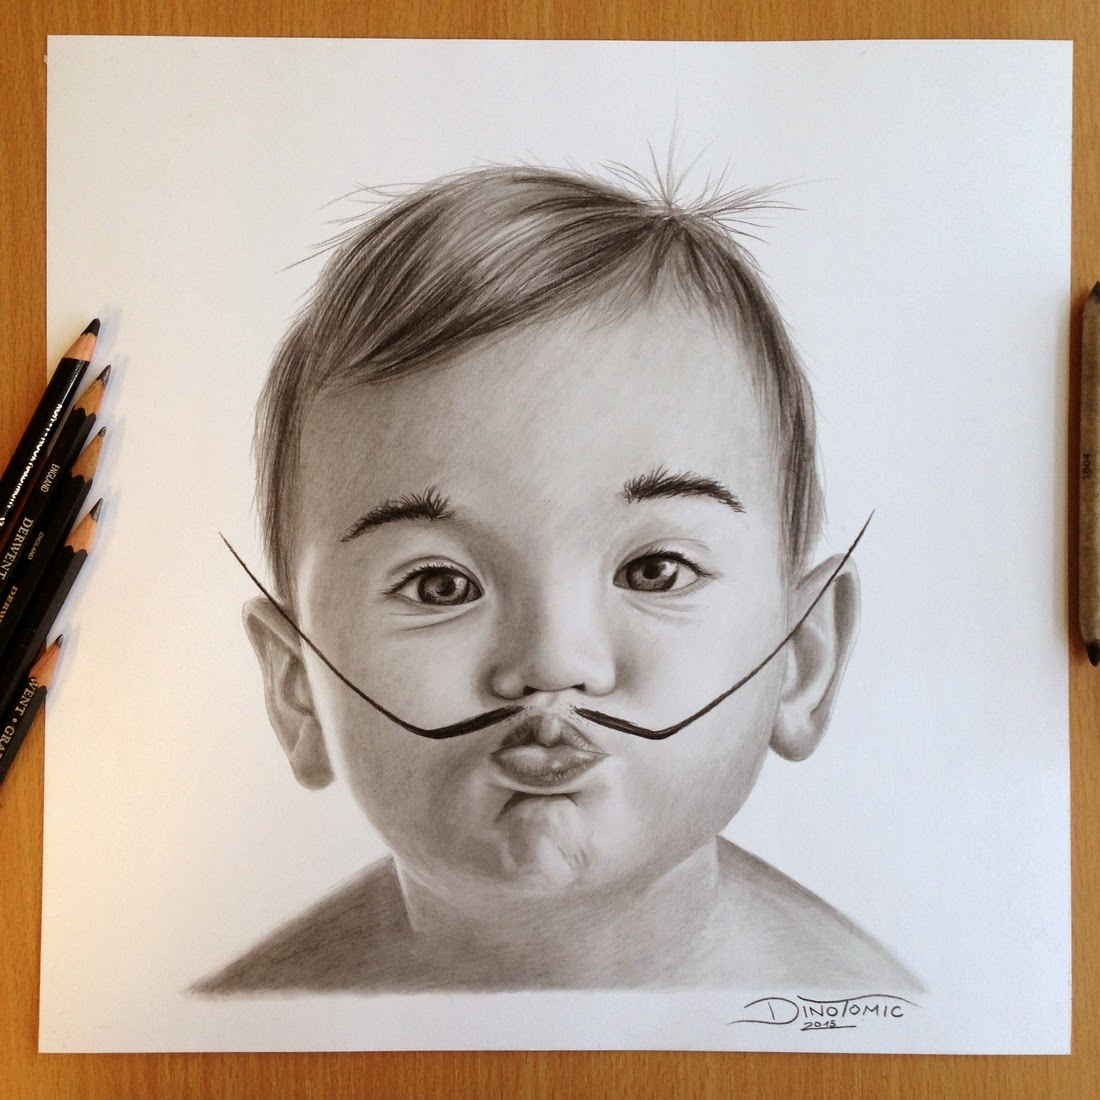 02-Baby-Salvador-Dali-Dino-Tomic-AtomiccircuS-Mastering-Art-in-Eclectic-Drawings-www-designstack-co